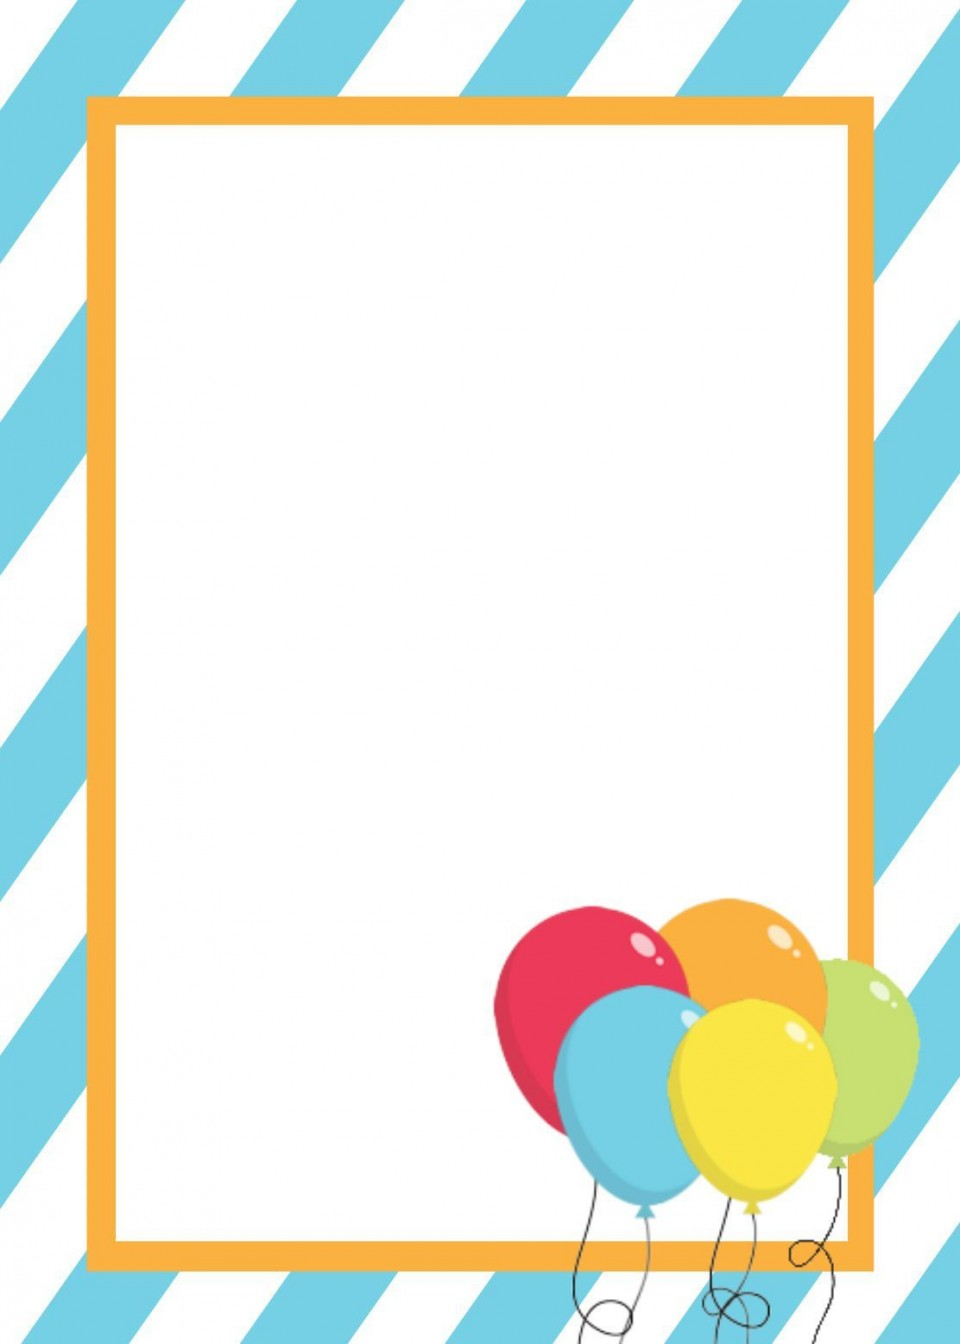 001 Incredible Free Birthday Party Invitation Template For Word Idea 960